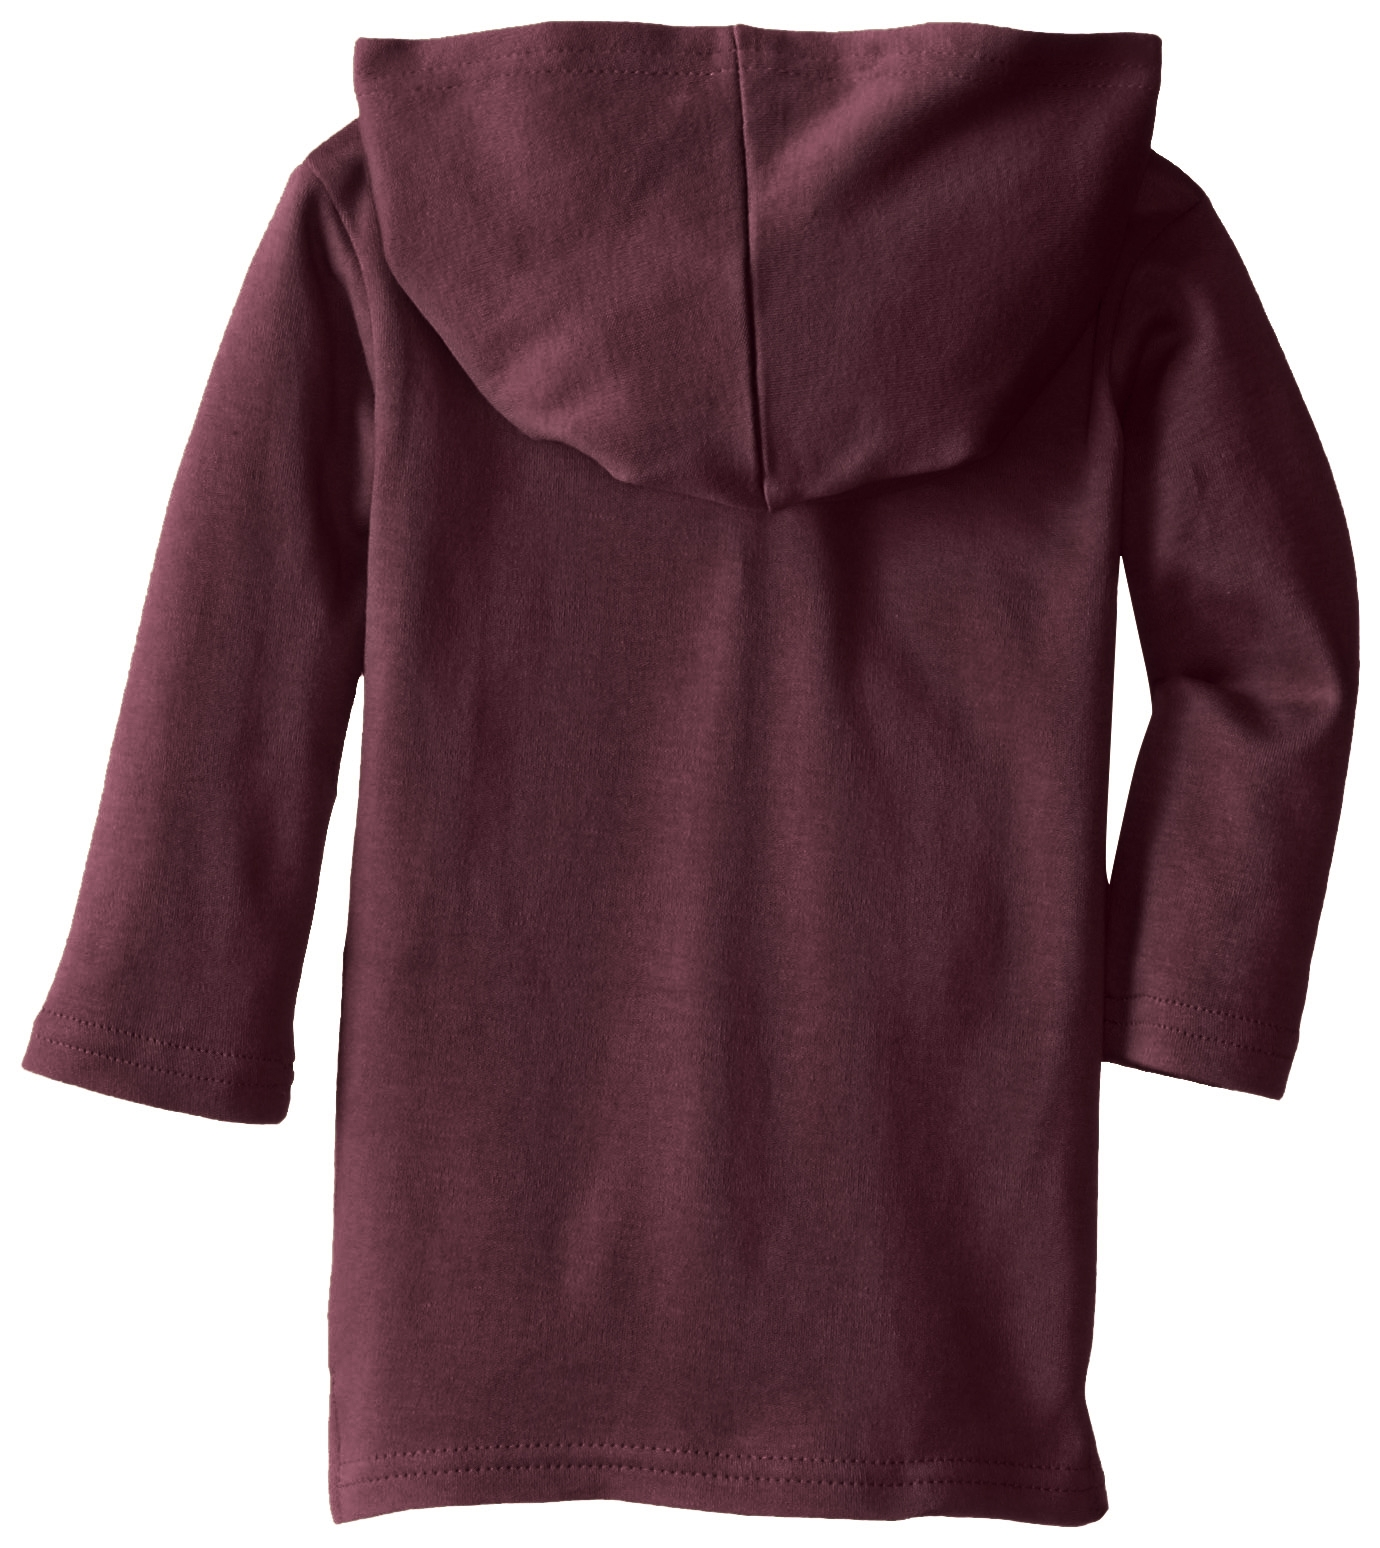 L'ovedbaby Unisex-Baby Newborn Organic Hoodie, Eggplant, 12/18 Months by L'ovedbaby (Image #3)